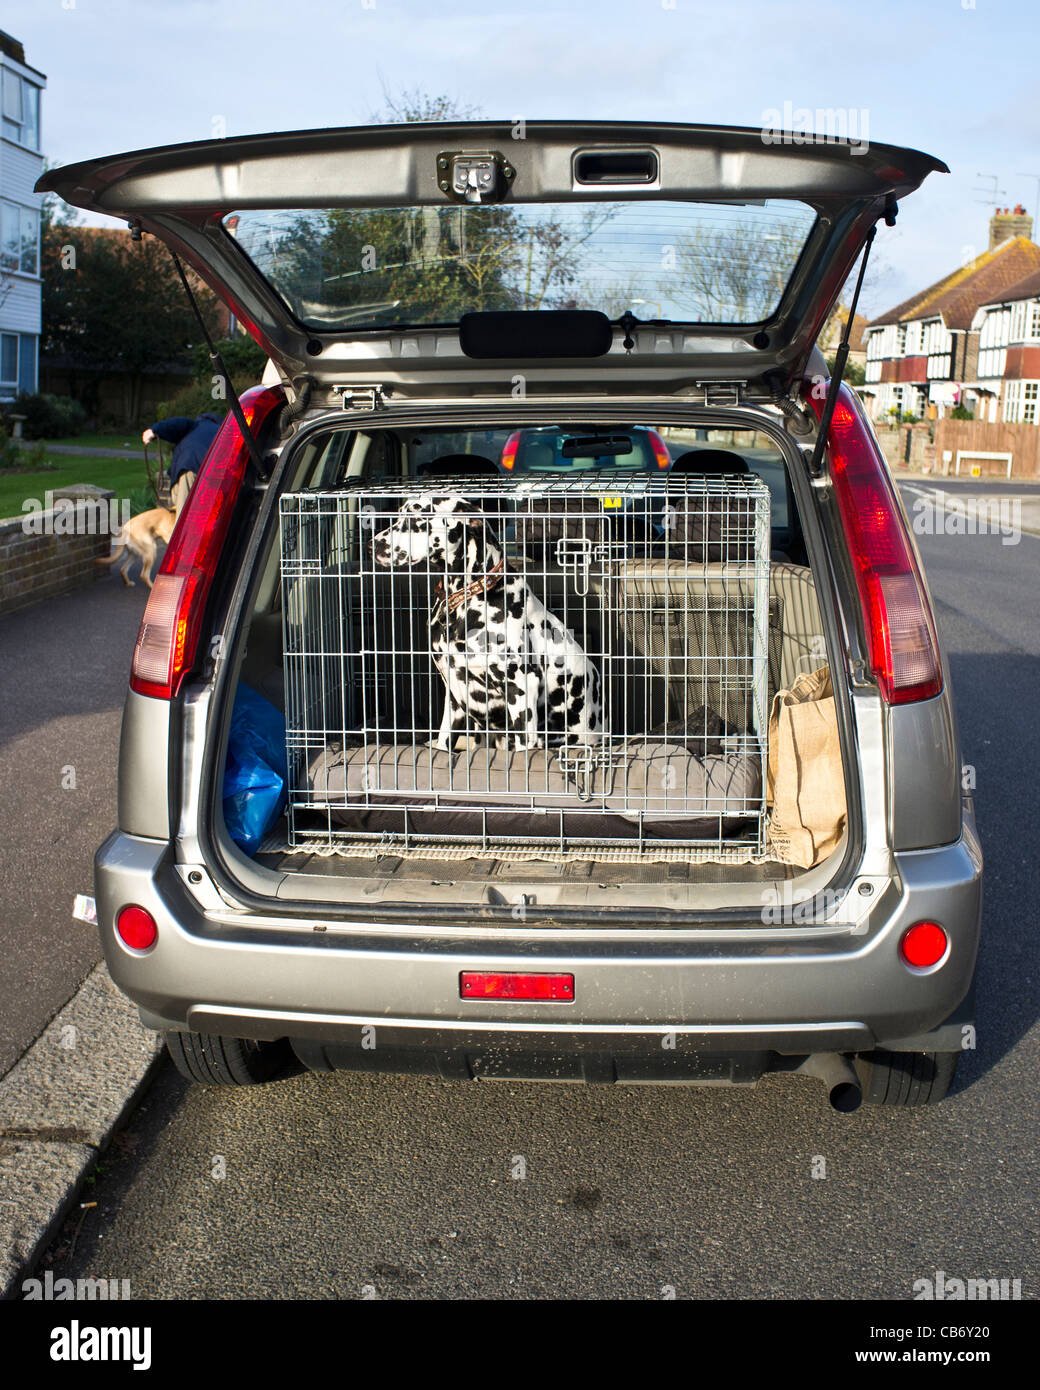 A dalmatian dog waits in a cage positioned in the back of a hatchback car. - Stock Image